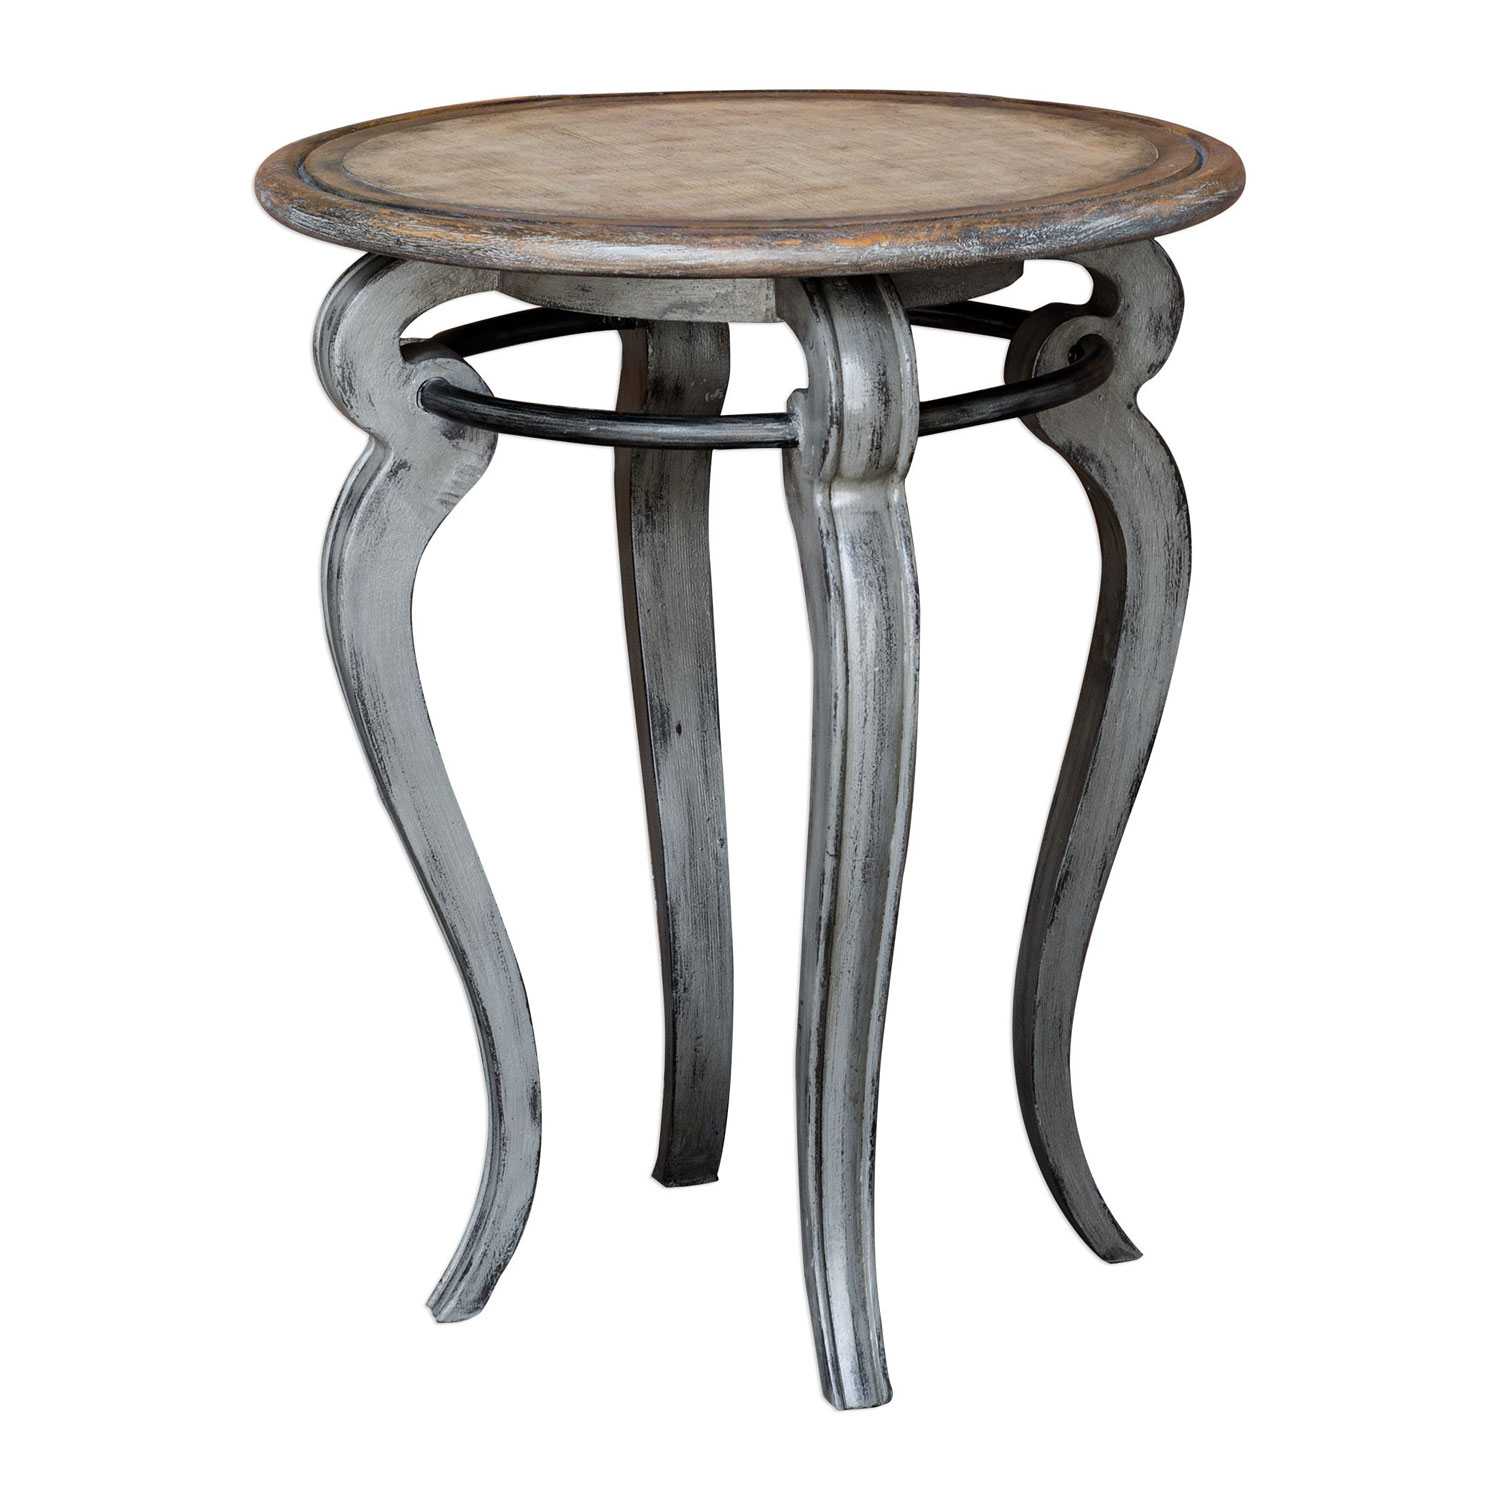 uttermost mariah round gray accent table bellacor hover zoom gold lamp small target tablecloth with usb ports black bar height cylinder side cocktail cloths matching nightstands